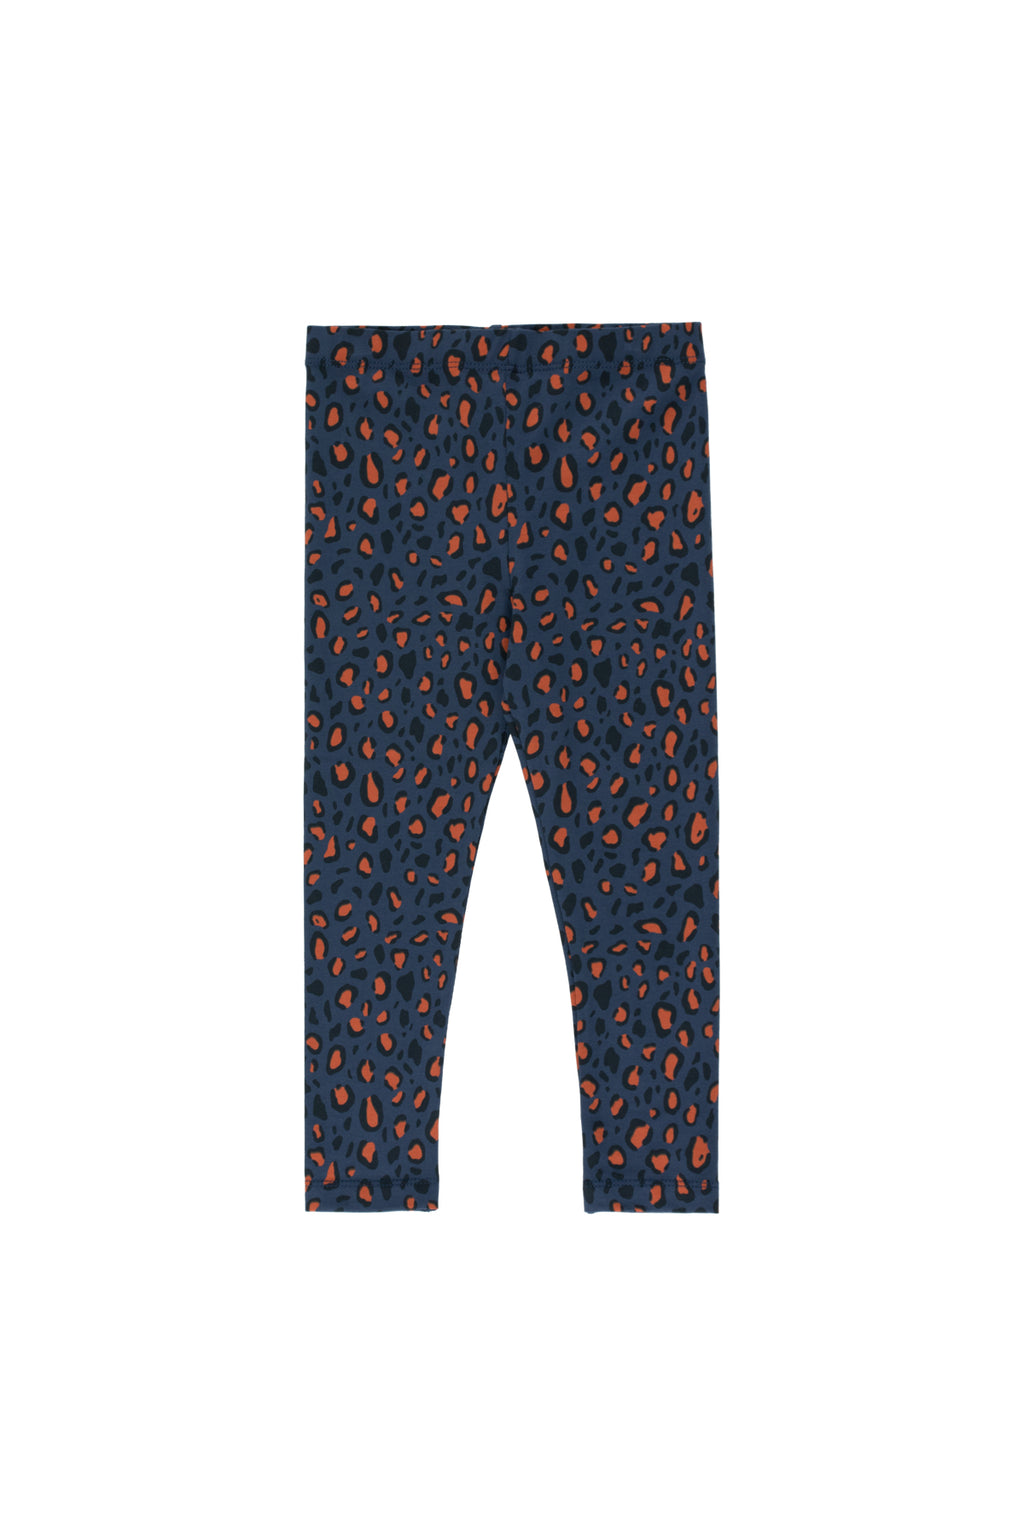 Tiny Cottons Animal Print Legging - Light Navy/Dark Brown